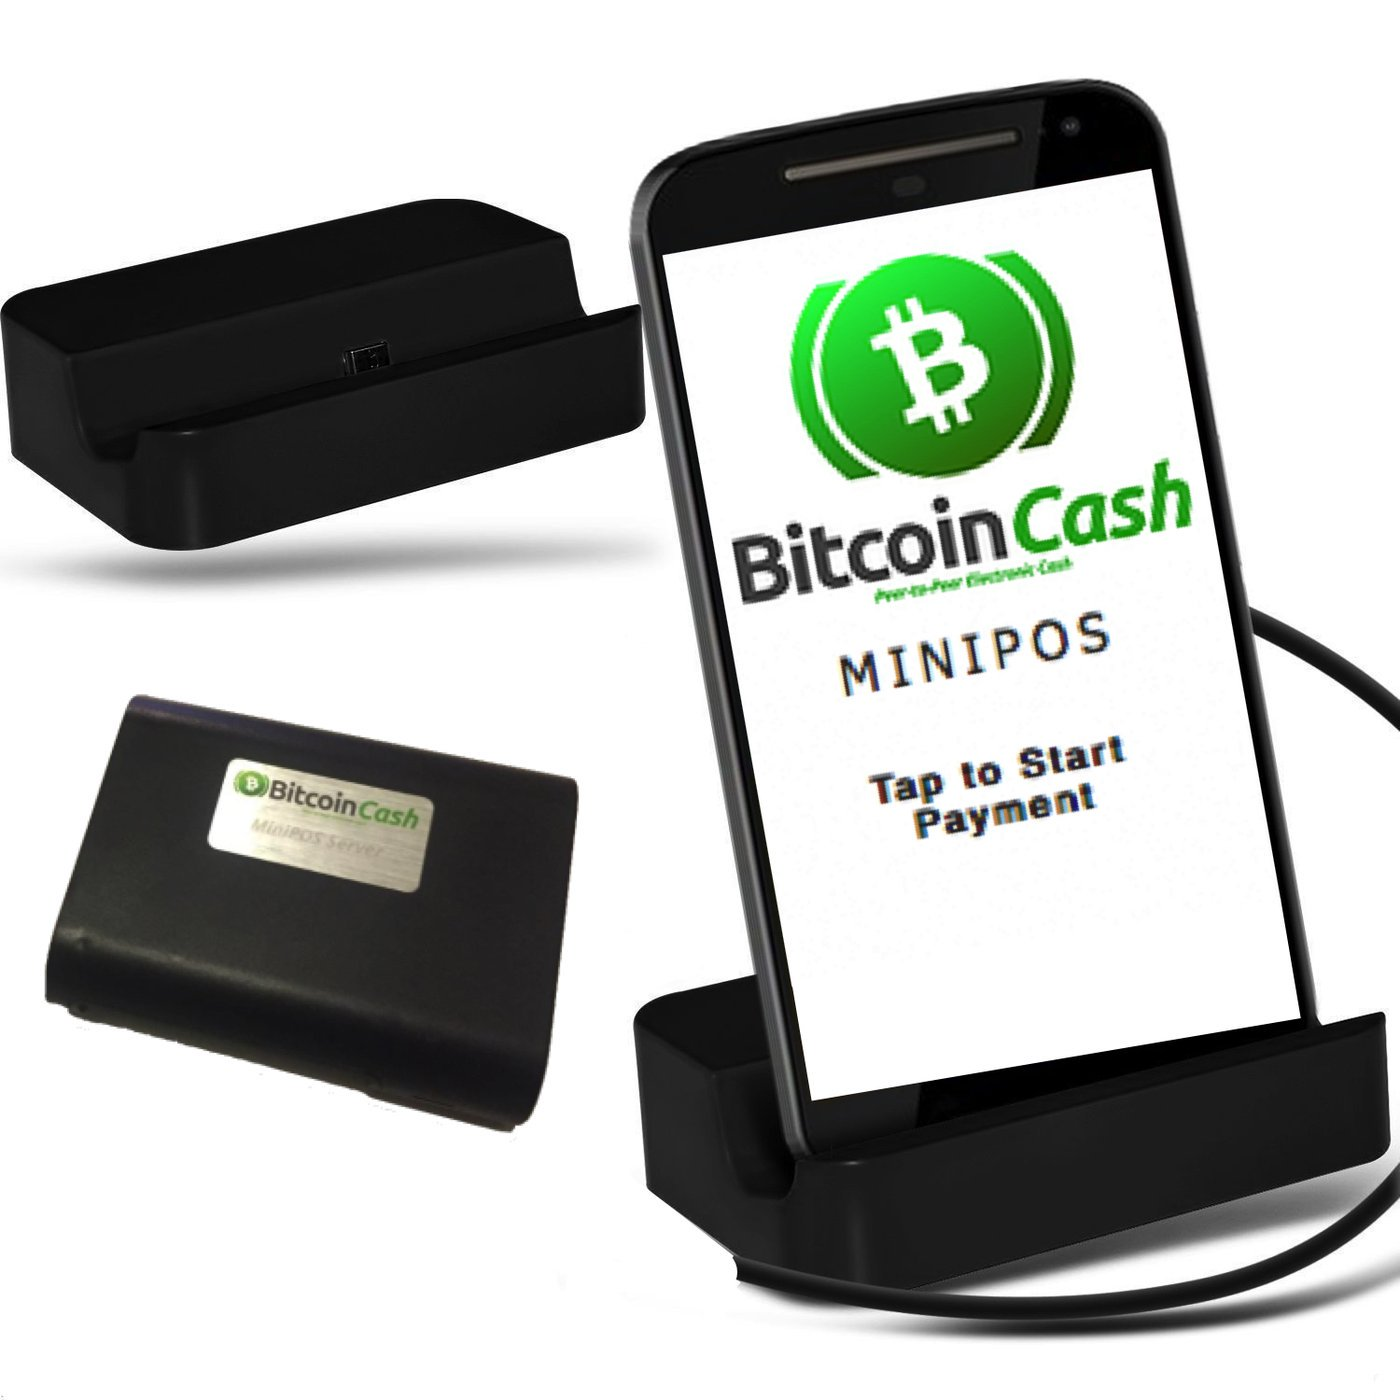 Mini-POS Launches Bitcoin Cash Point-of-Sale Terminal